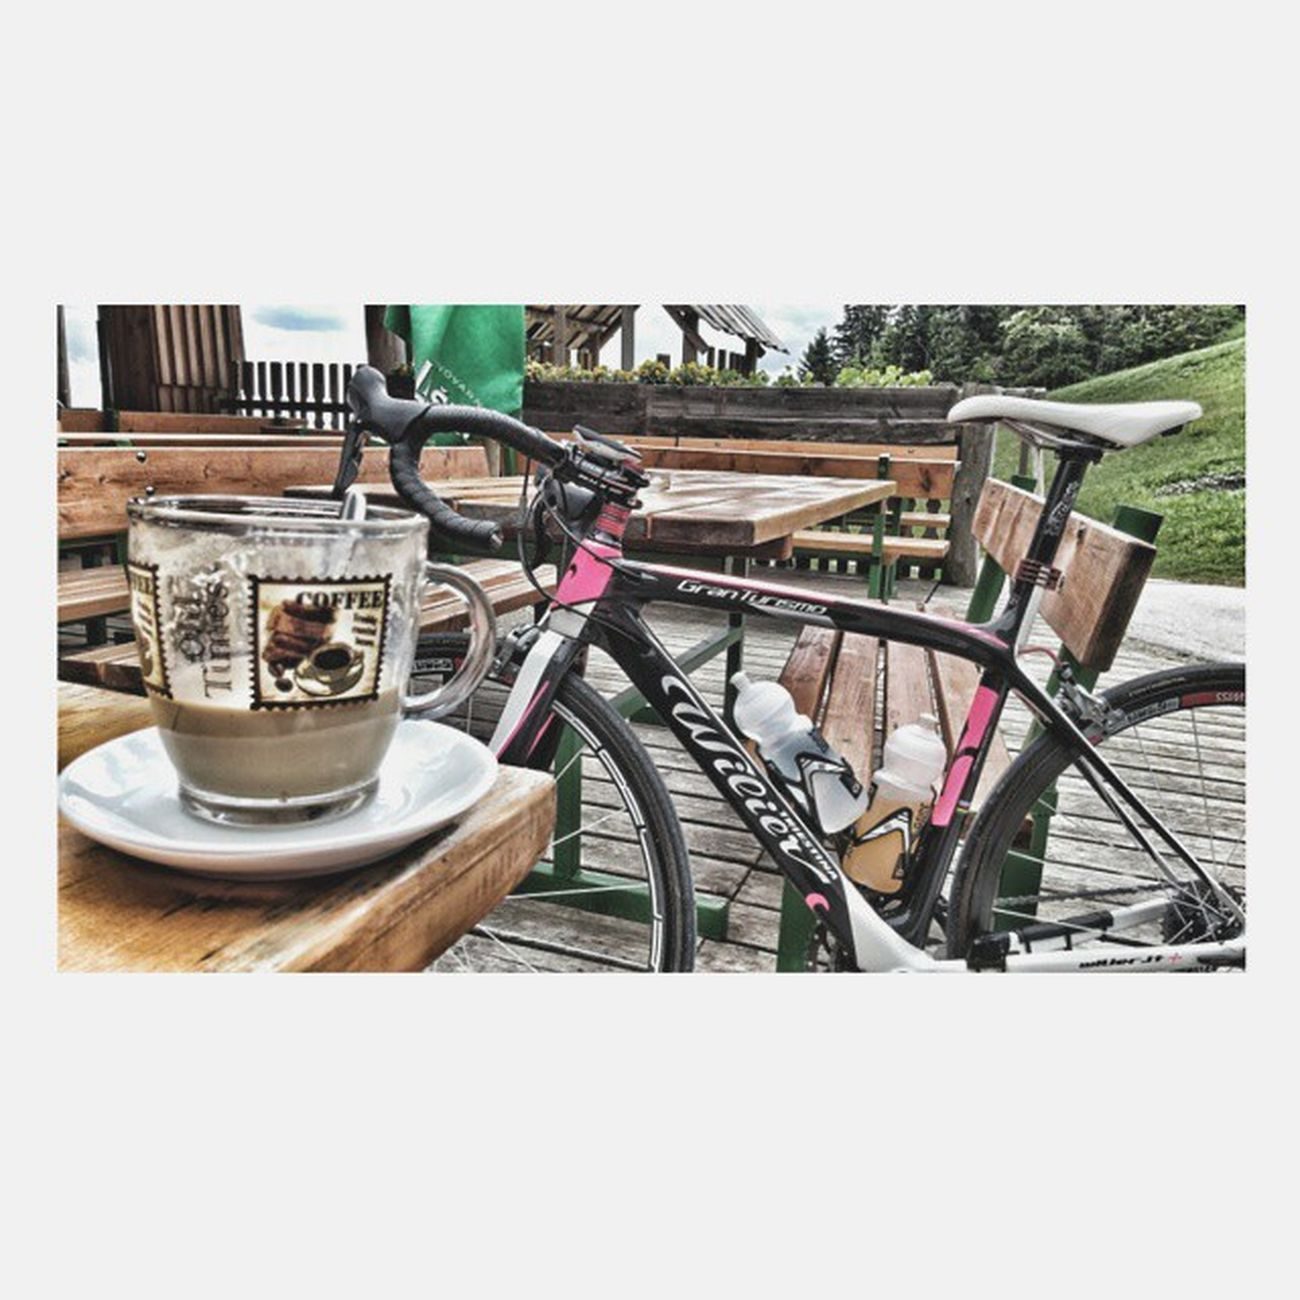 Instasize Cyclinggirl Cycling Cyclingphotos Stravacycling Stravaproveit Stravaphoto Wilier Coffee Womenonwheels Dtswiss Itwasworthit Starivrh Igslovenia IfeelsLOVEnia Roadbike Roadcycling Steepclimb Keeponsmiling Lifeisgood Ig_neverstopexploring TakingABreak Nevergiveup Igerscycling PiT stoP nA staReM vrHu 💪💪🚵🚵🚴🚴☕☕